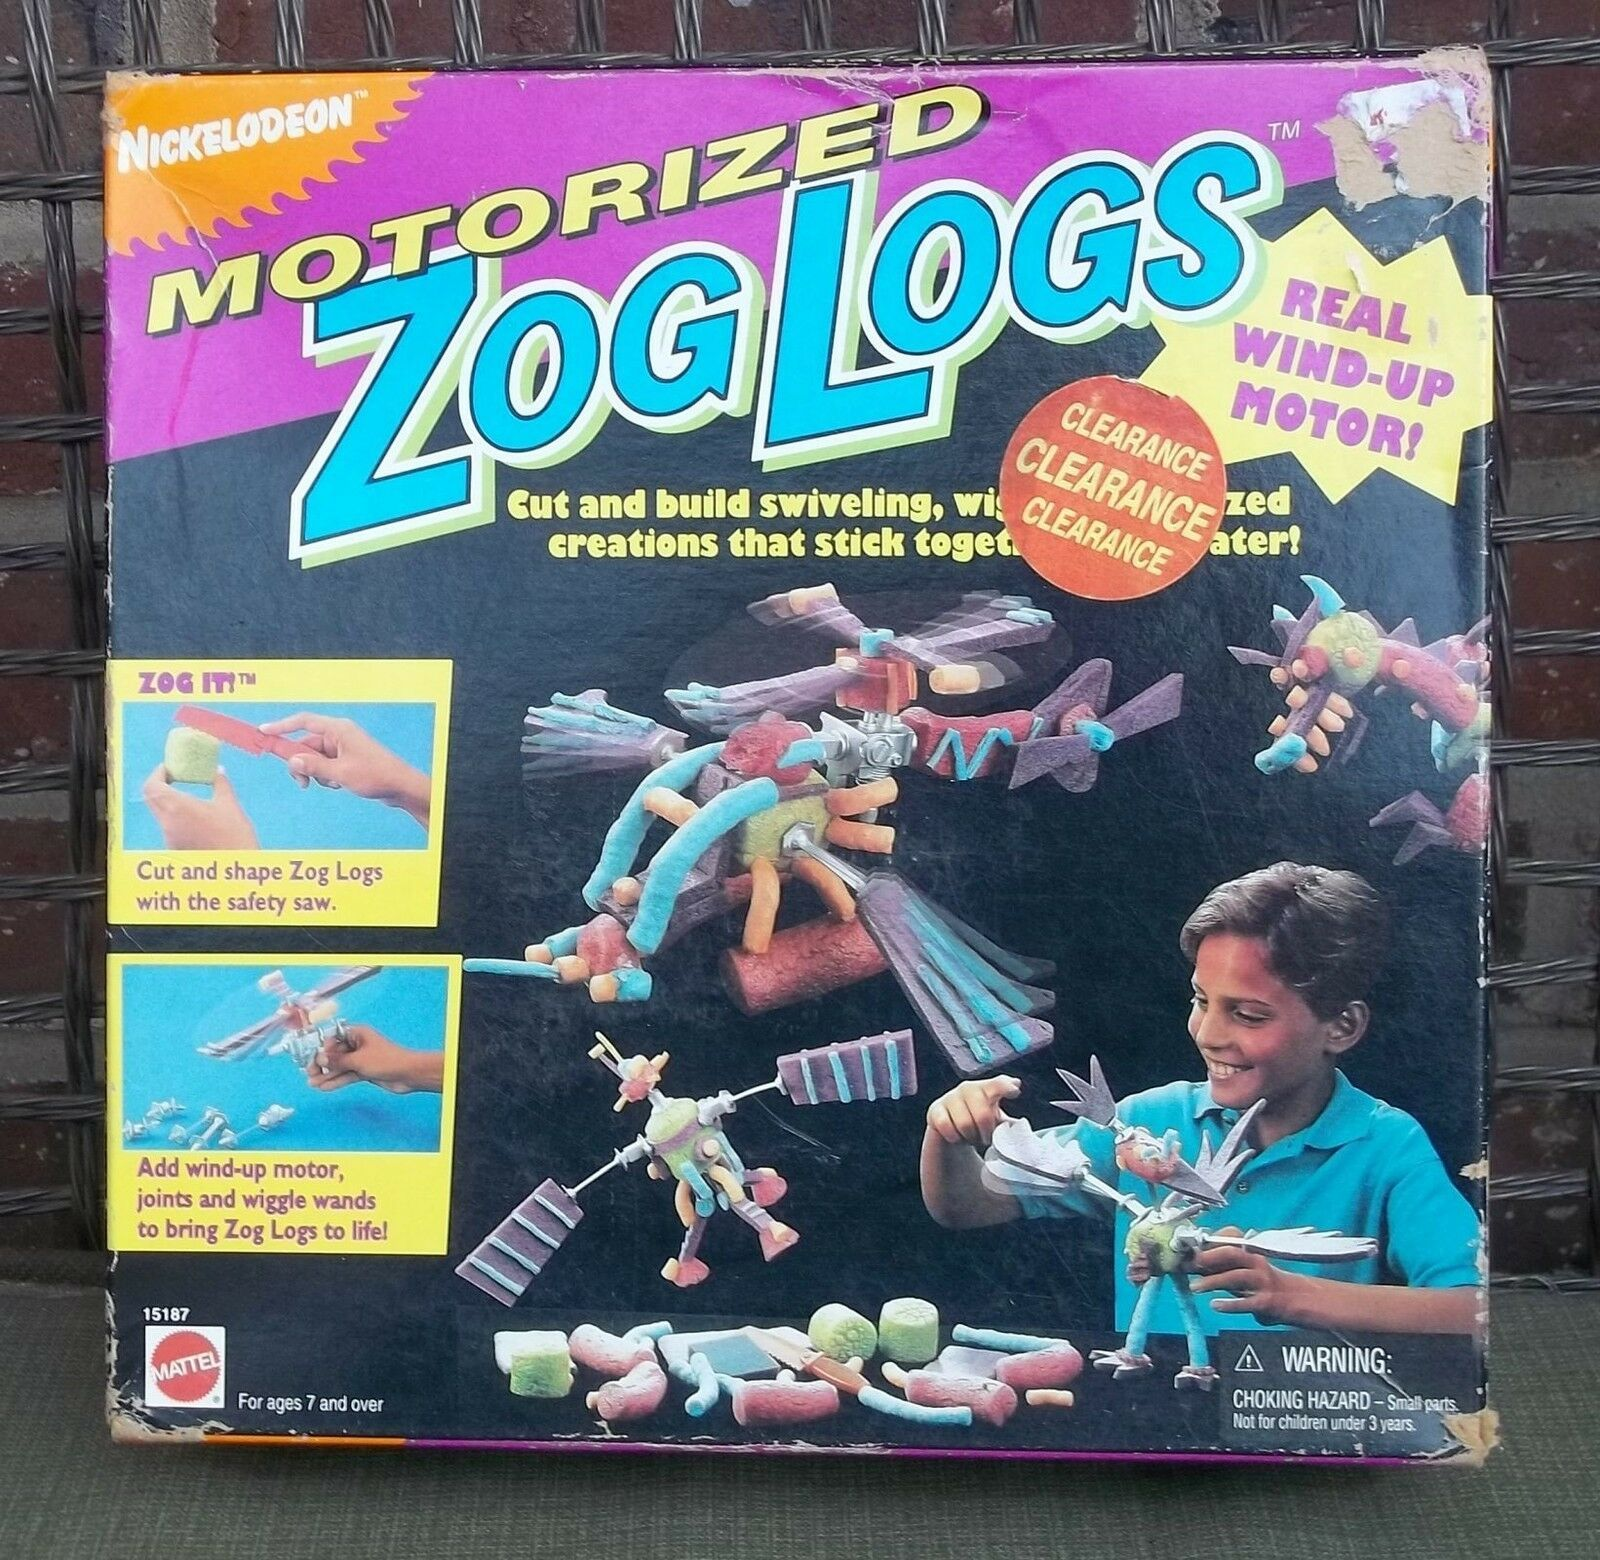 Primary image for Mattel Nickelodeon Motorized Zog Logs Activity Set NIB Cut and Build